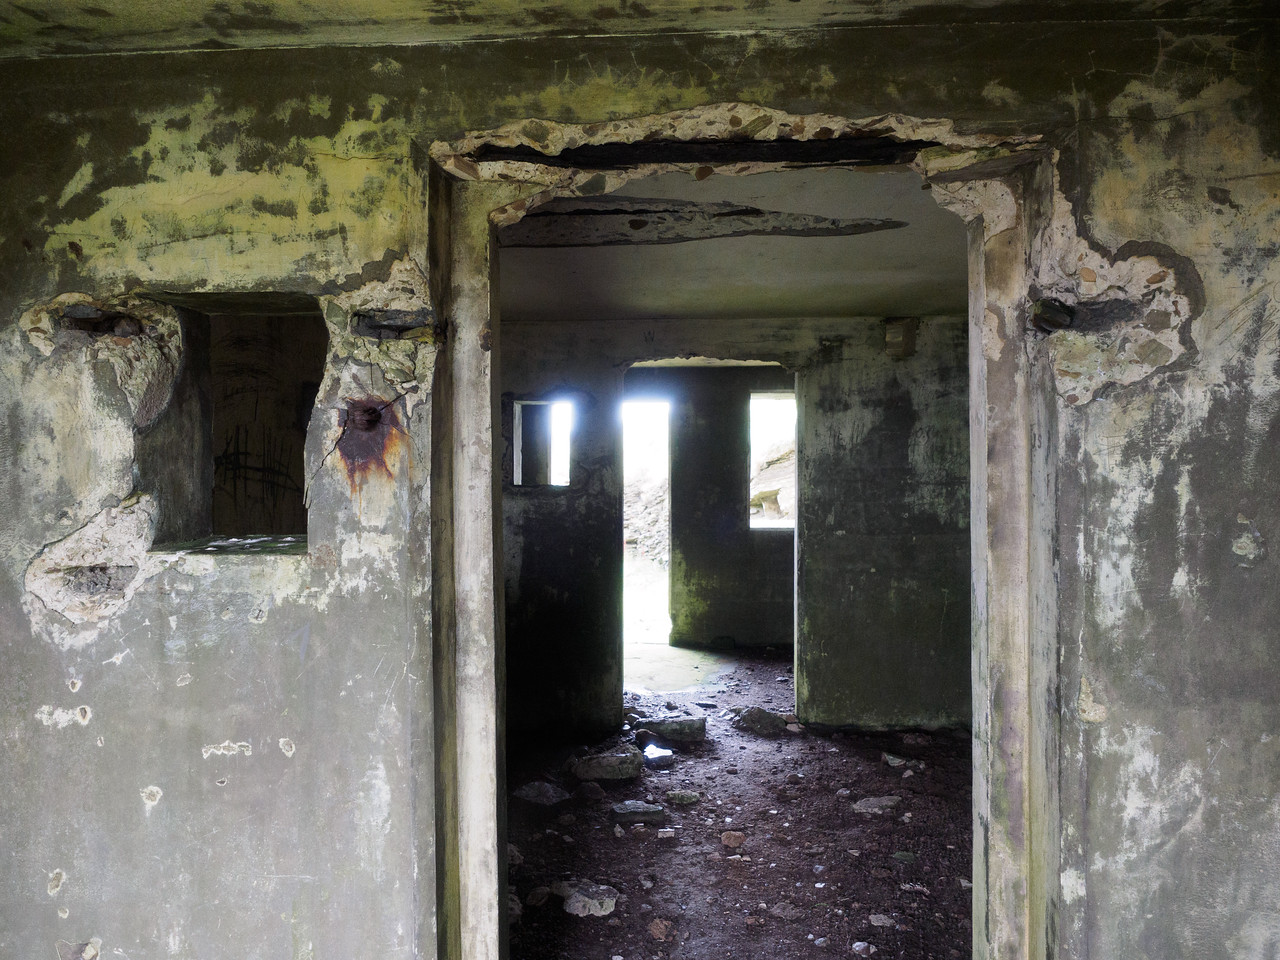 This building was part of a gun battery from the First World War.